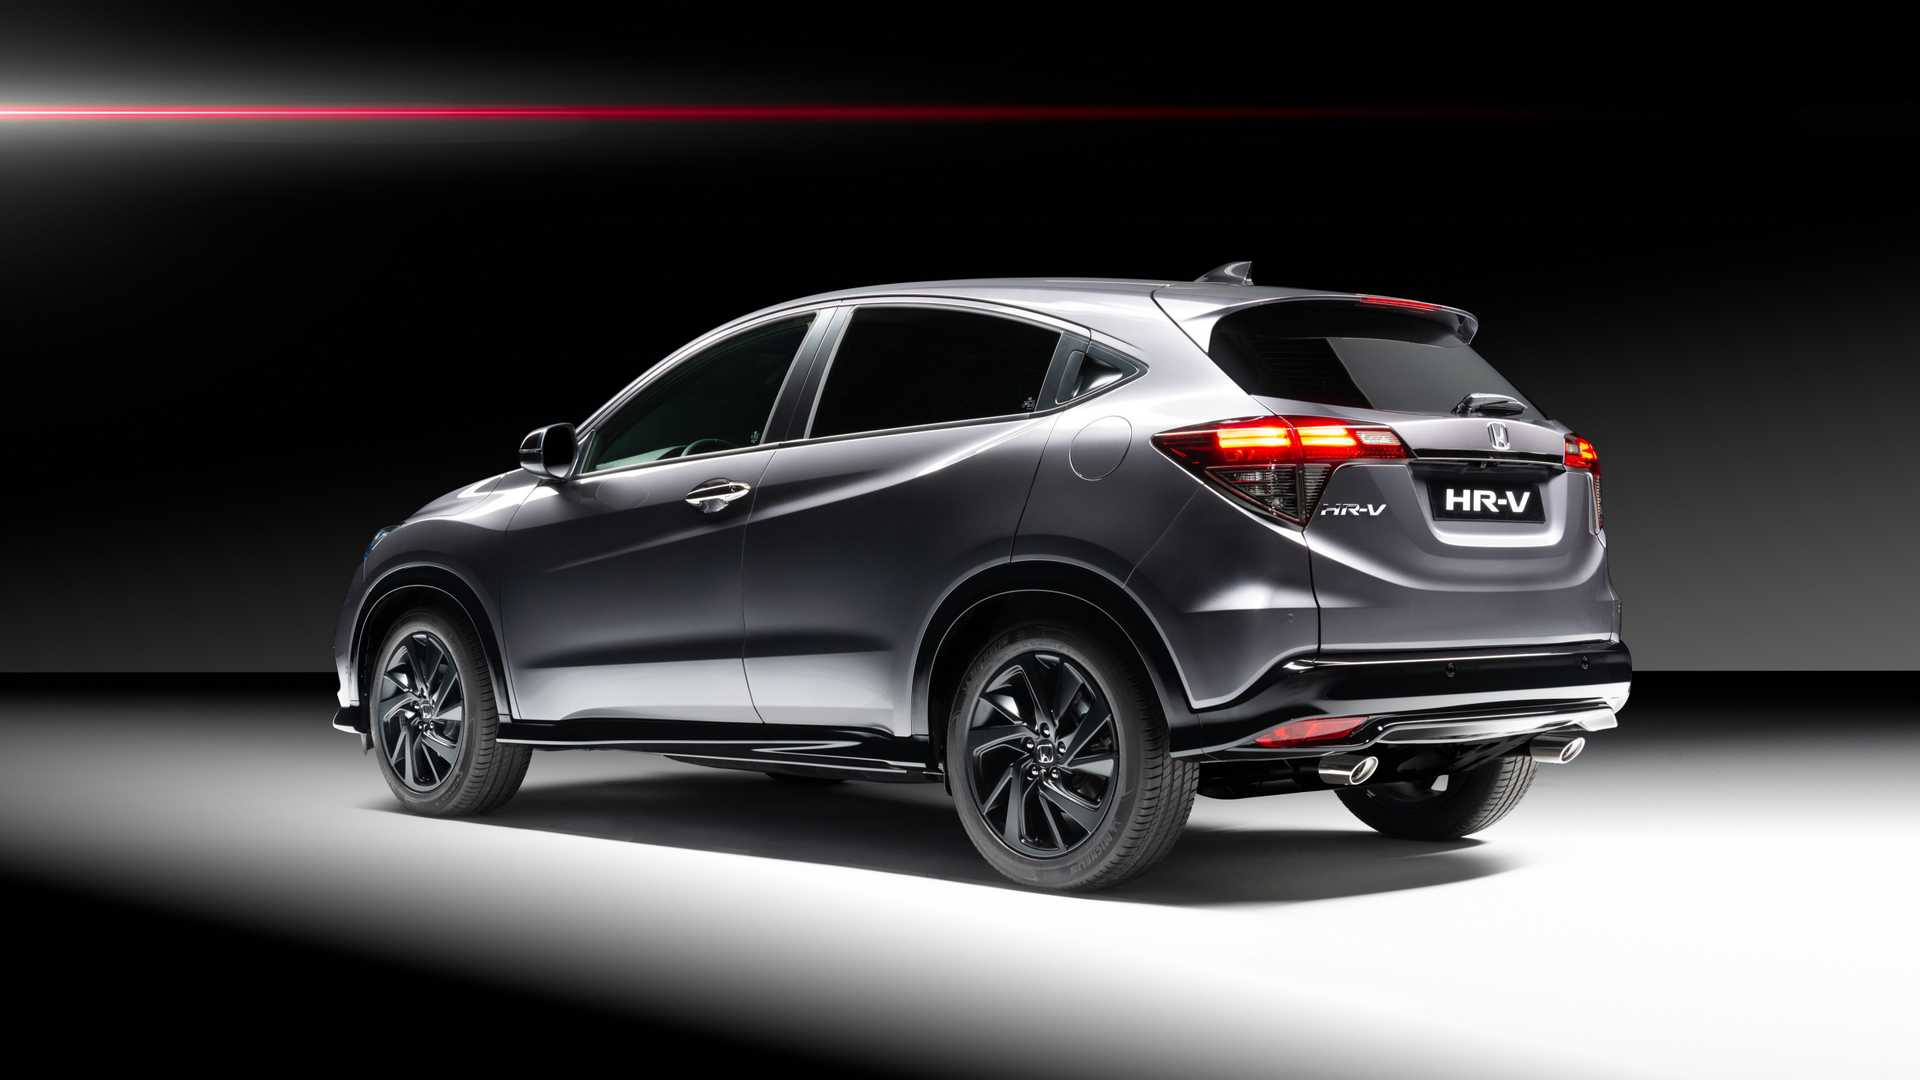 56 All New 2019 Honda Vezel Redesign And Concept